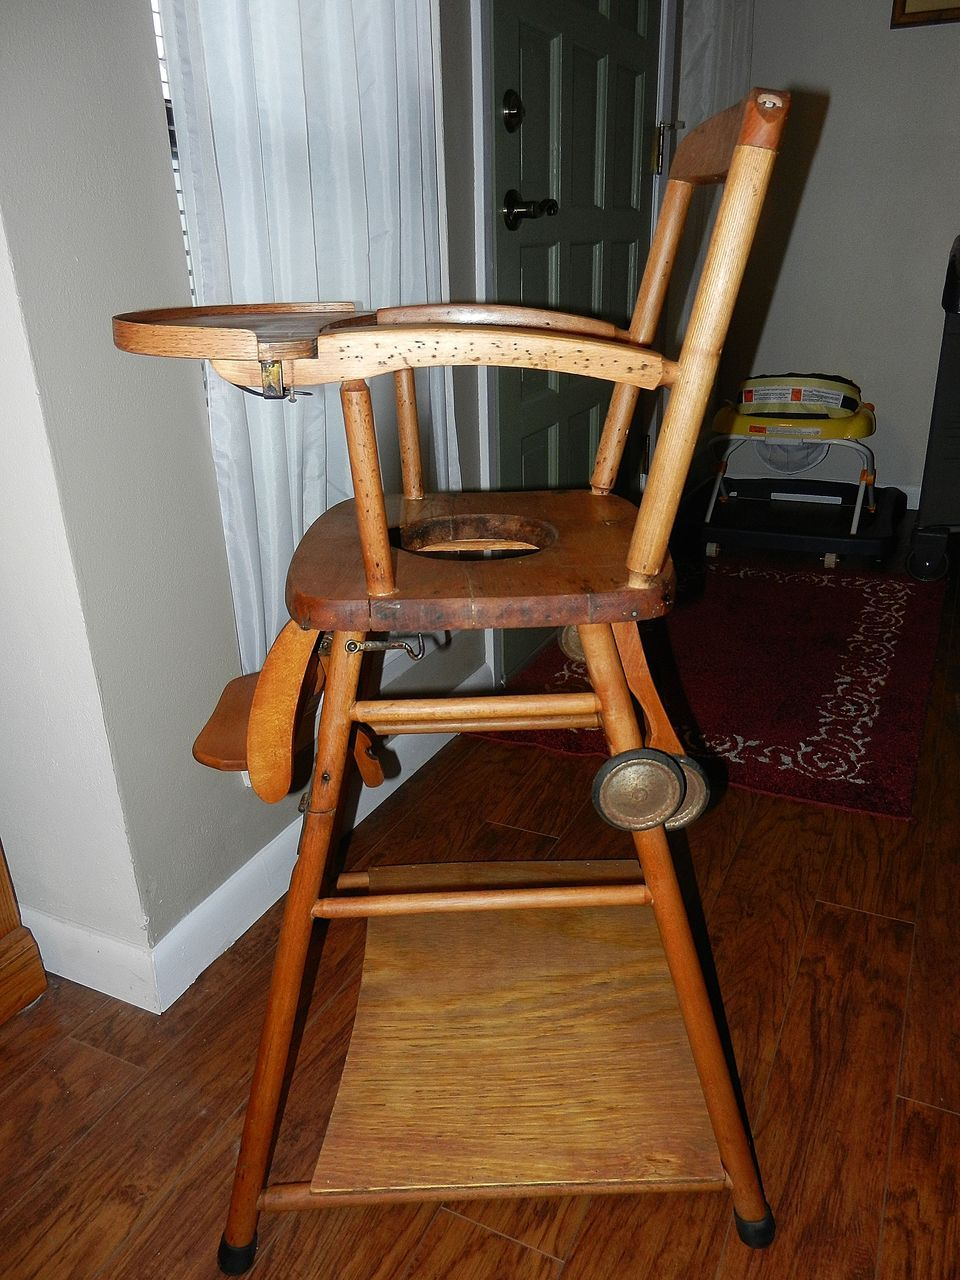 Vintage Wooden High Chair Potty Chair and Play Chair in One from - Antique High Chairs Wooden